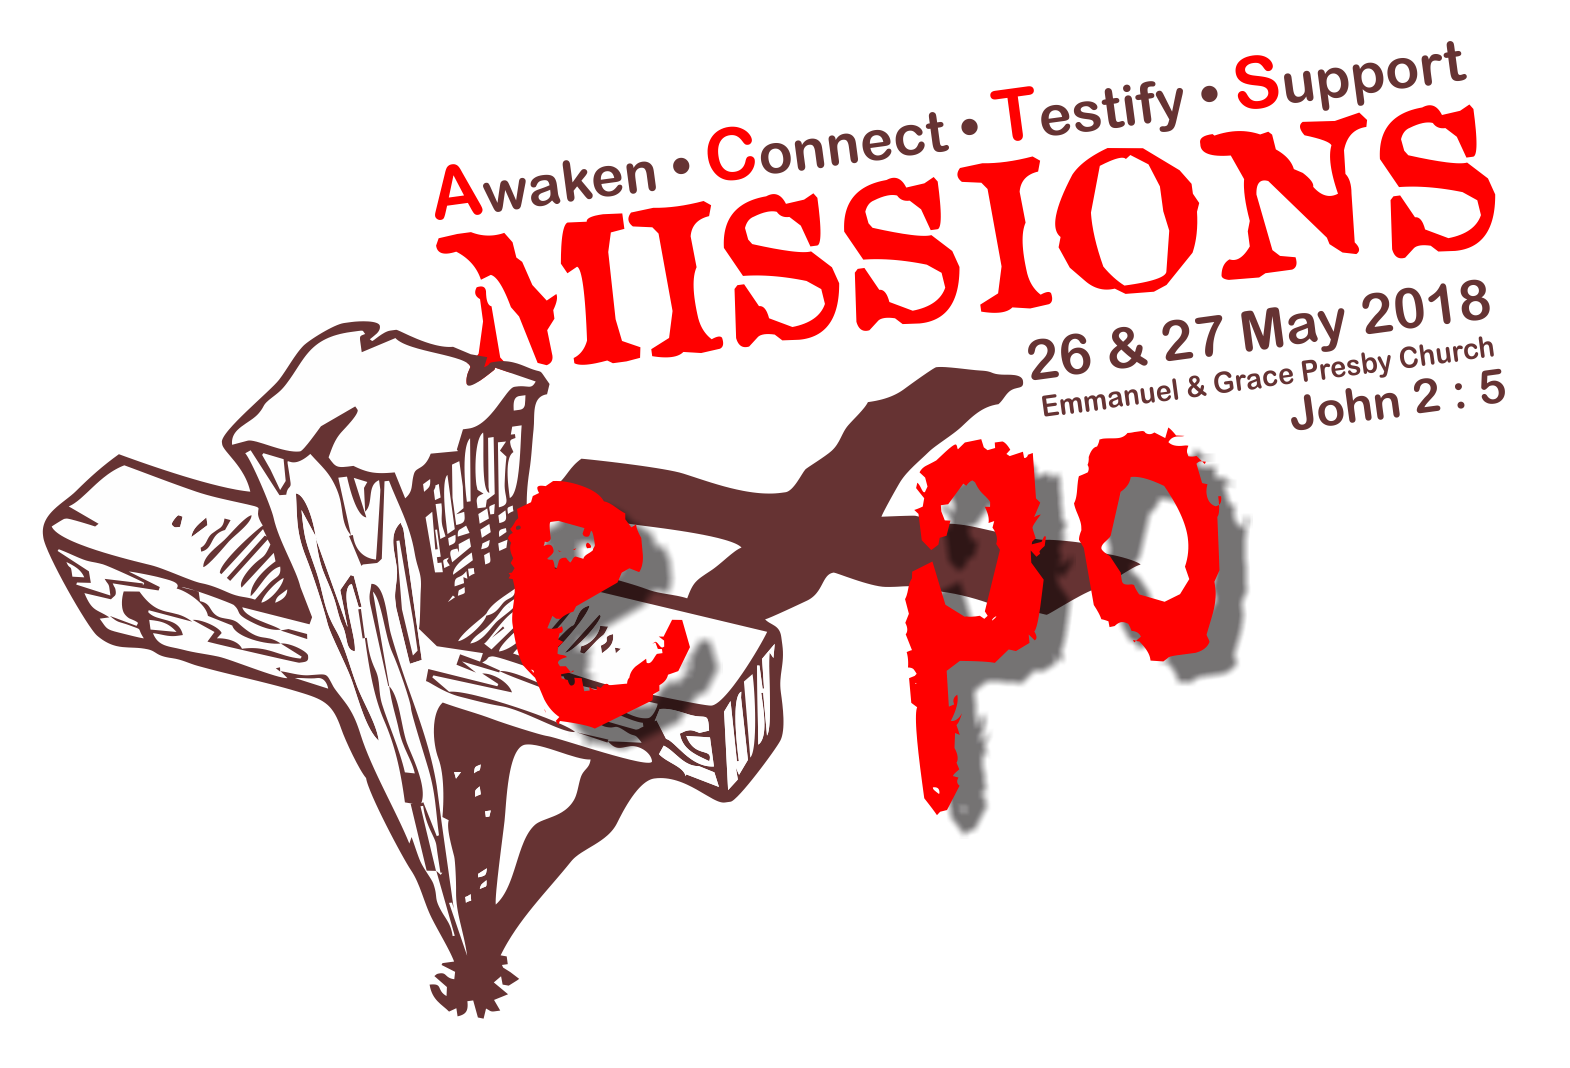 Mission's Expo 26 & 27 May 2018